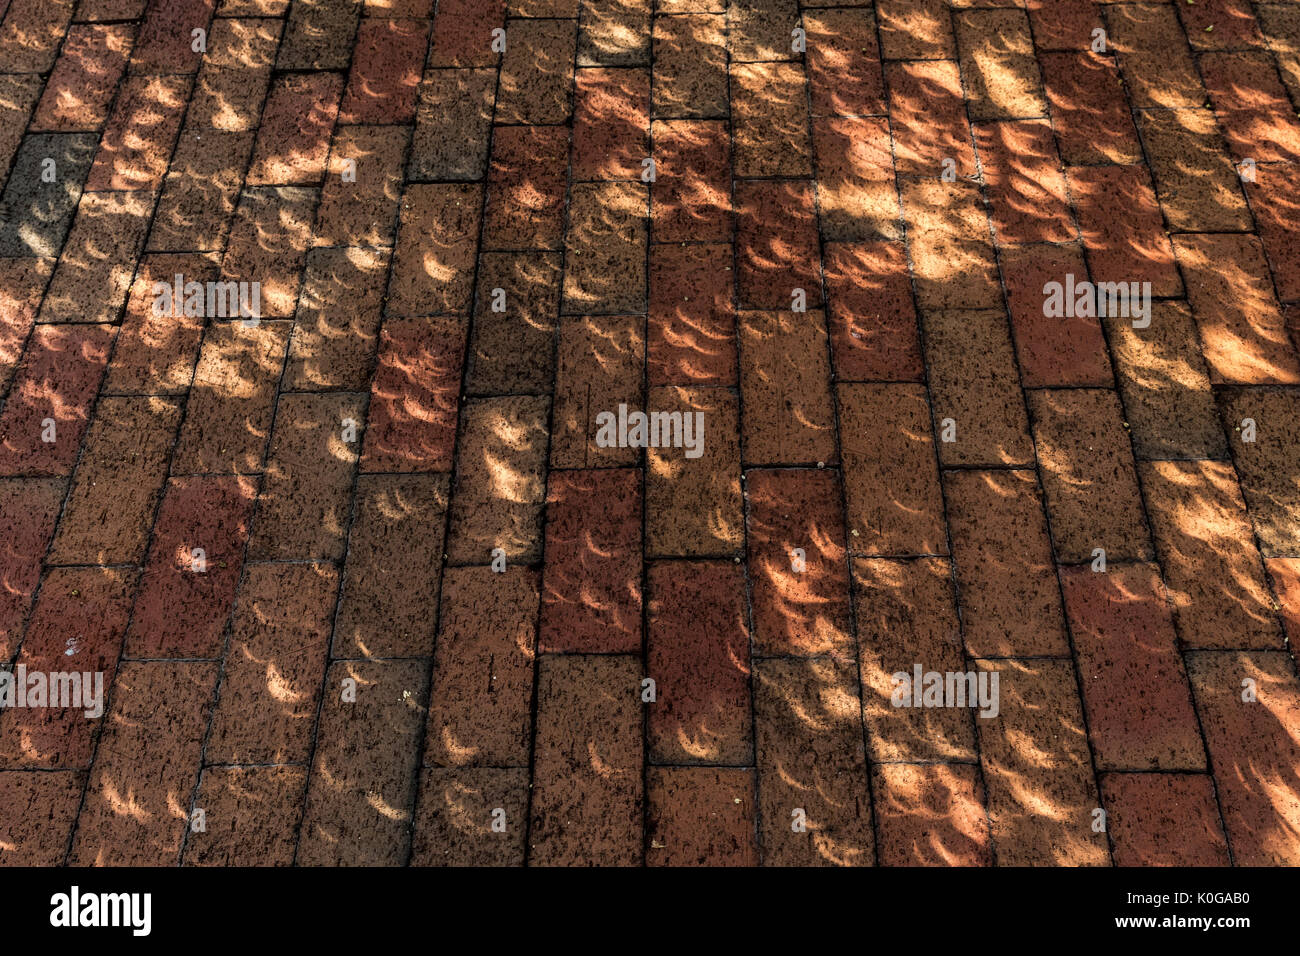 Crescent shaped images of partially eclipsed sun dapple ground below tree in Columbia, SC just after period of totality; solar eclipse of 21 Aug 2017 - Stock Image